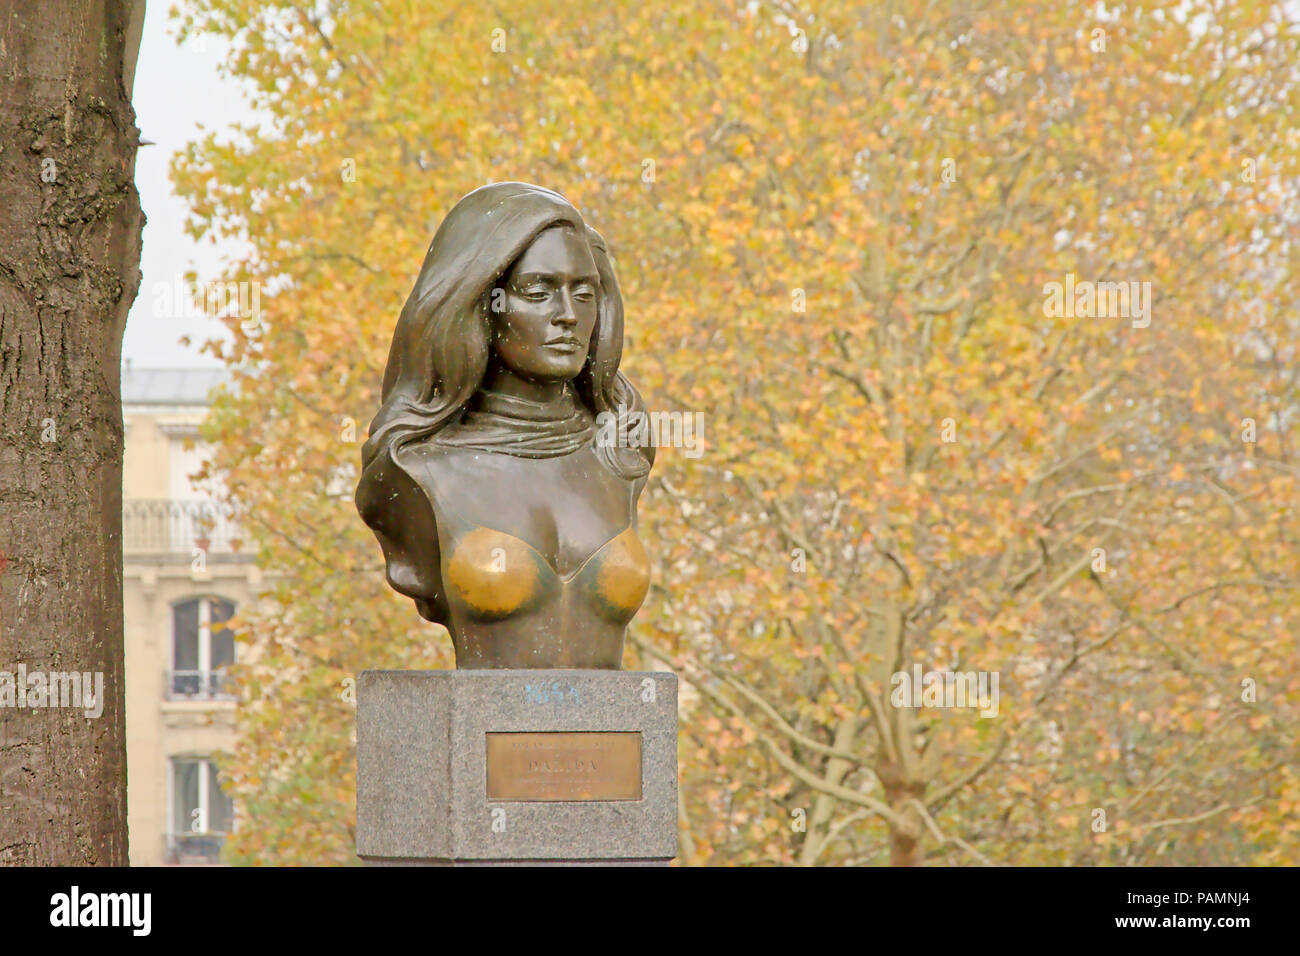 Brass bust of the famous French singer Dalida, found in Montmartre in Paris, selective focus - Stock Image